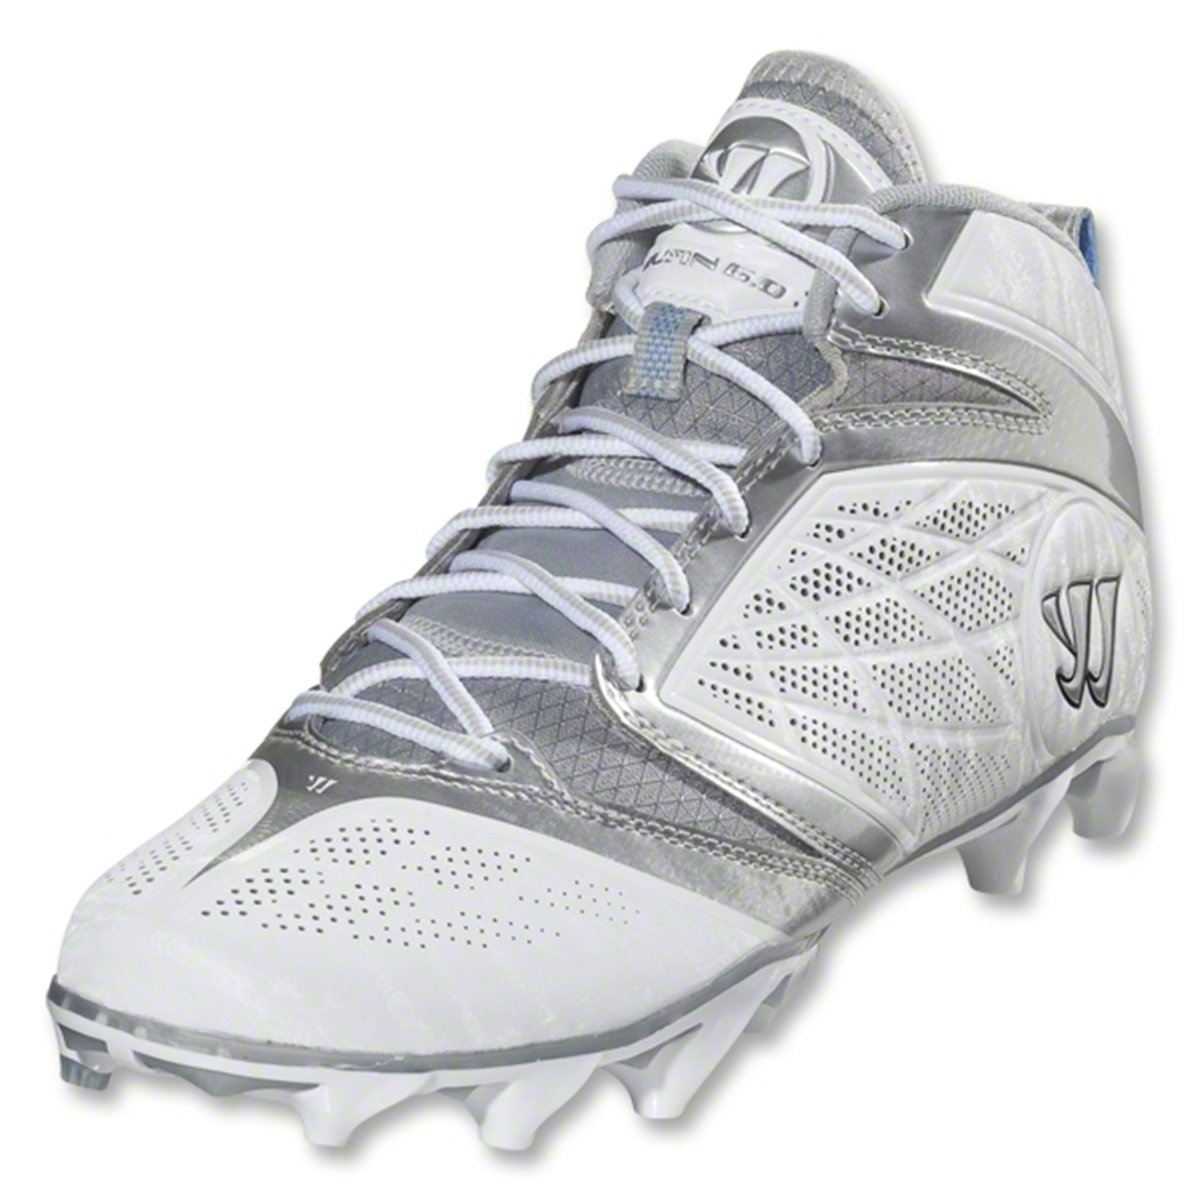 Warrior Men's Burn Speed 6.0 Mid Lacrosse Cleats - White/silver